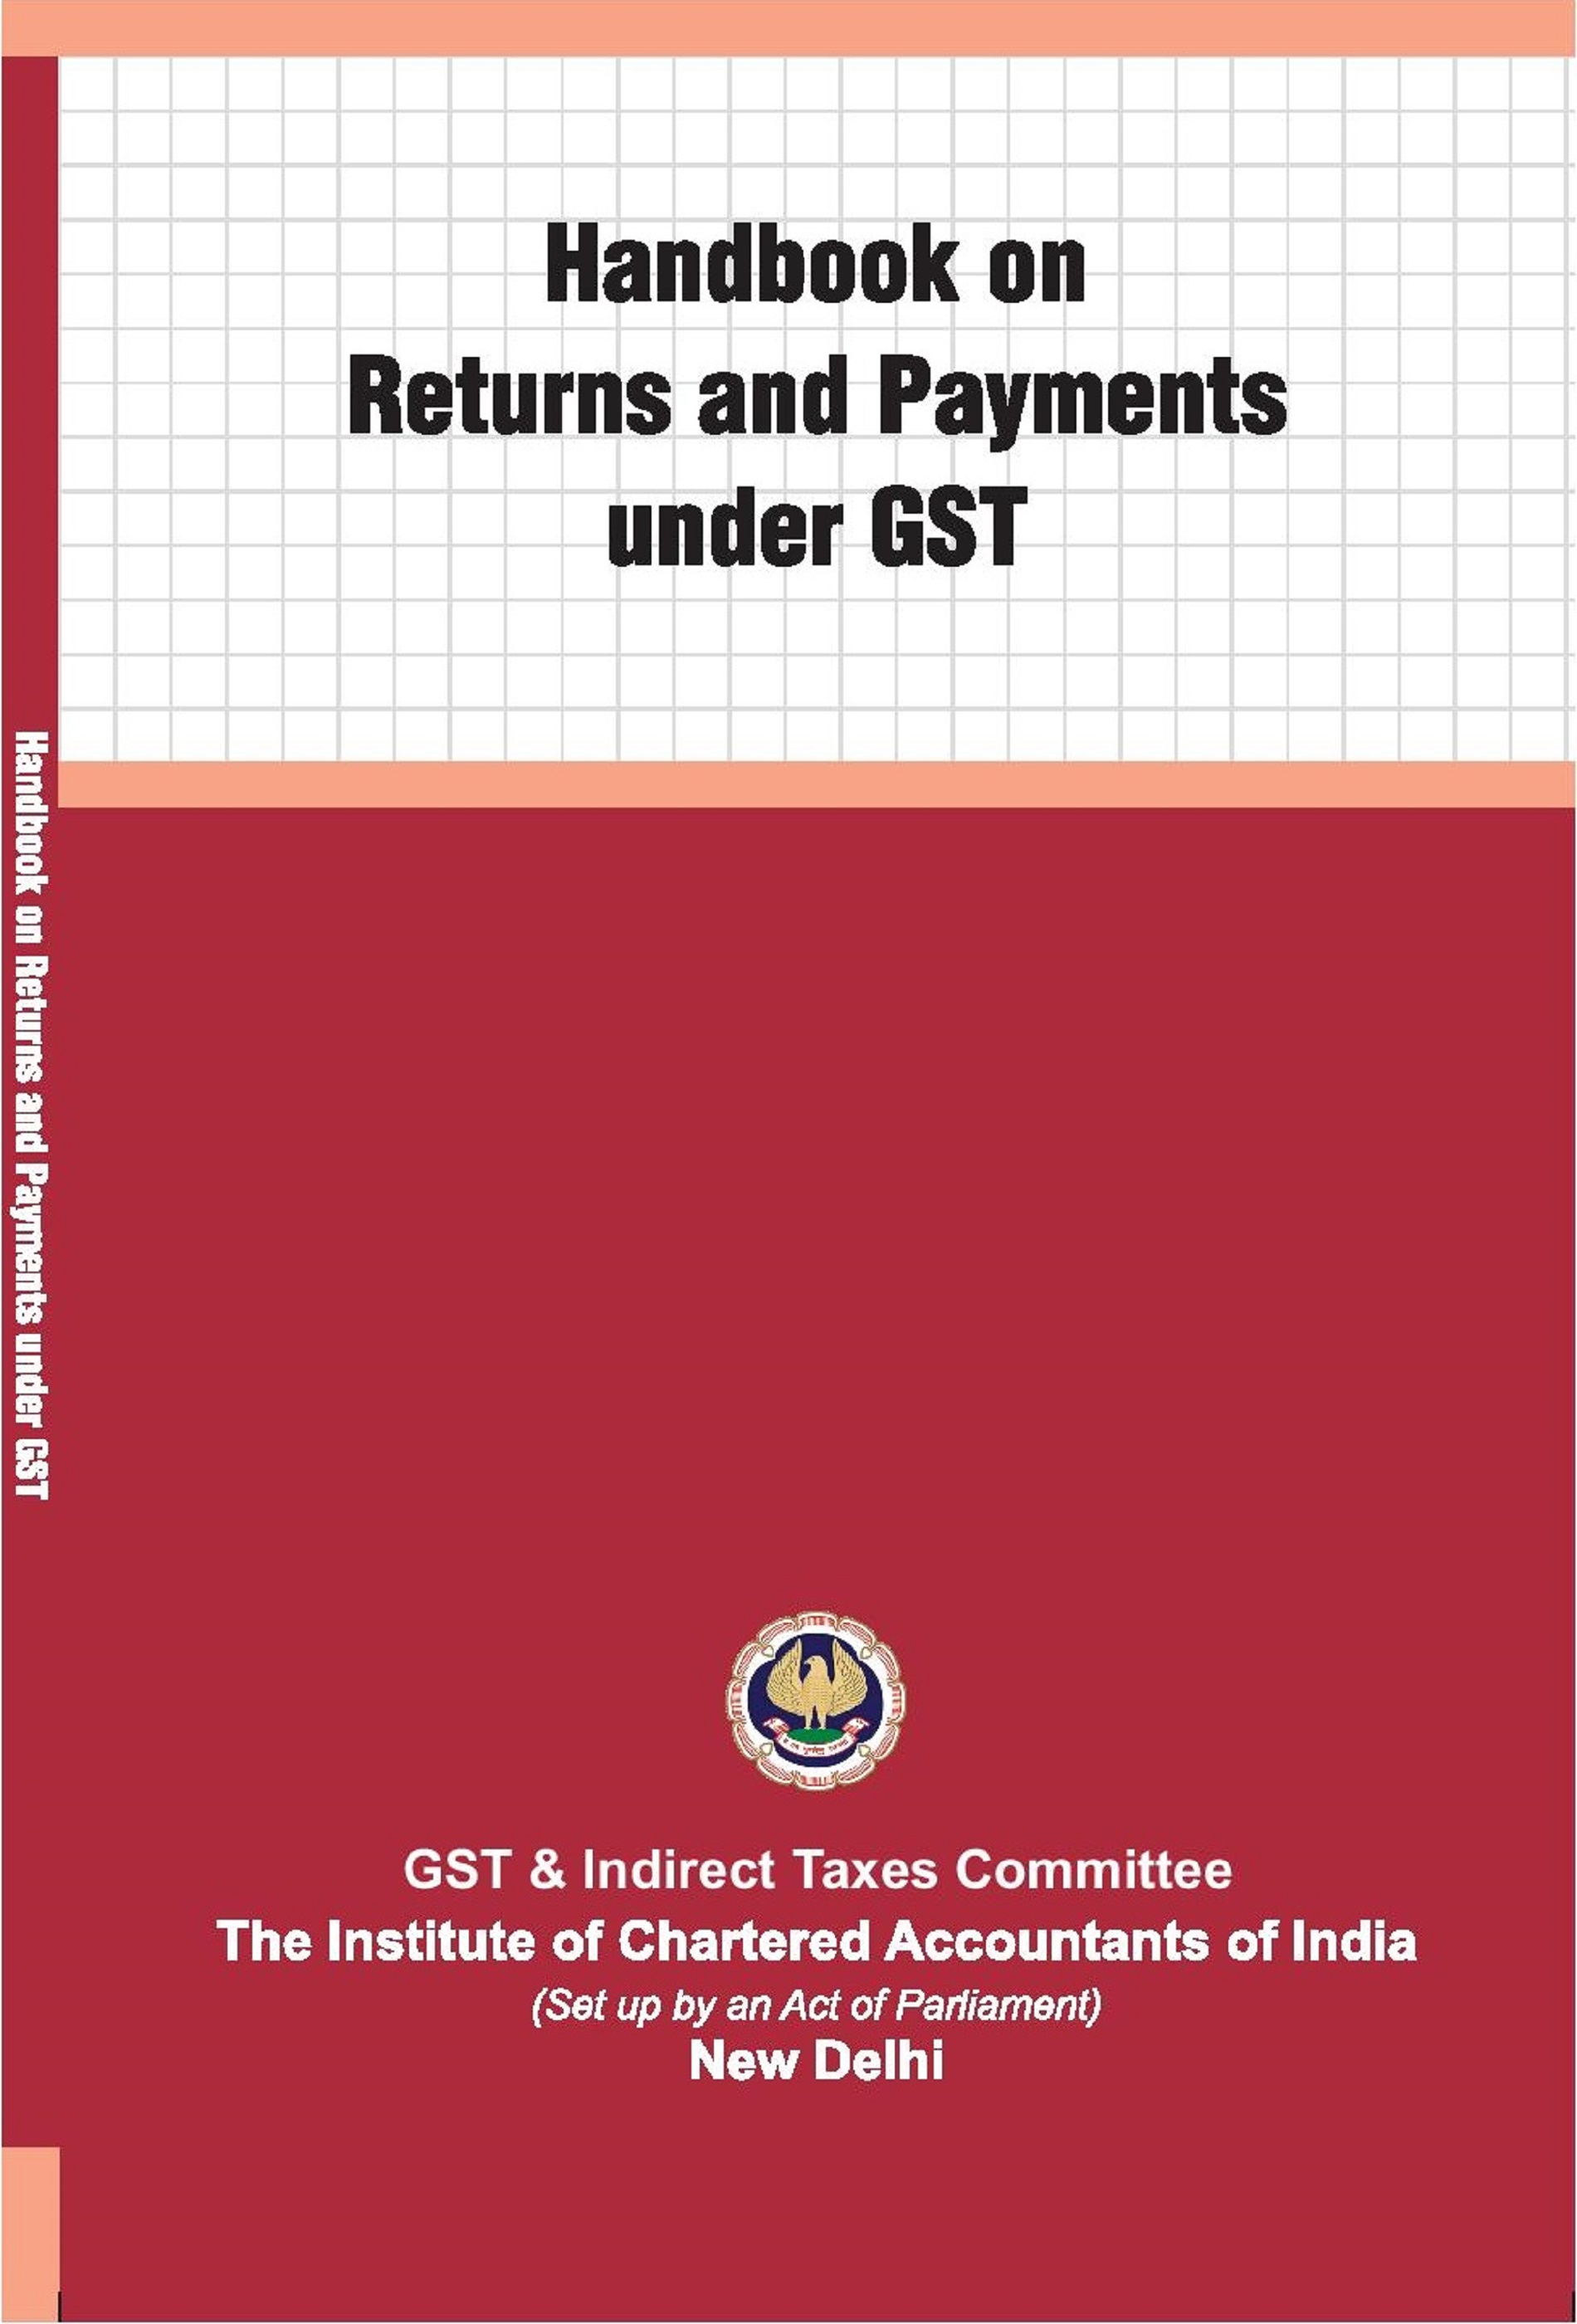 Handbook on Returns and Payments under GST (December, 2020)